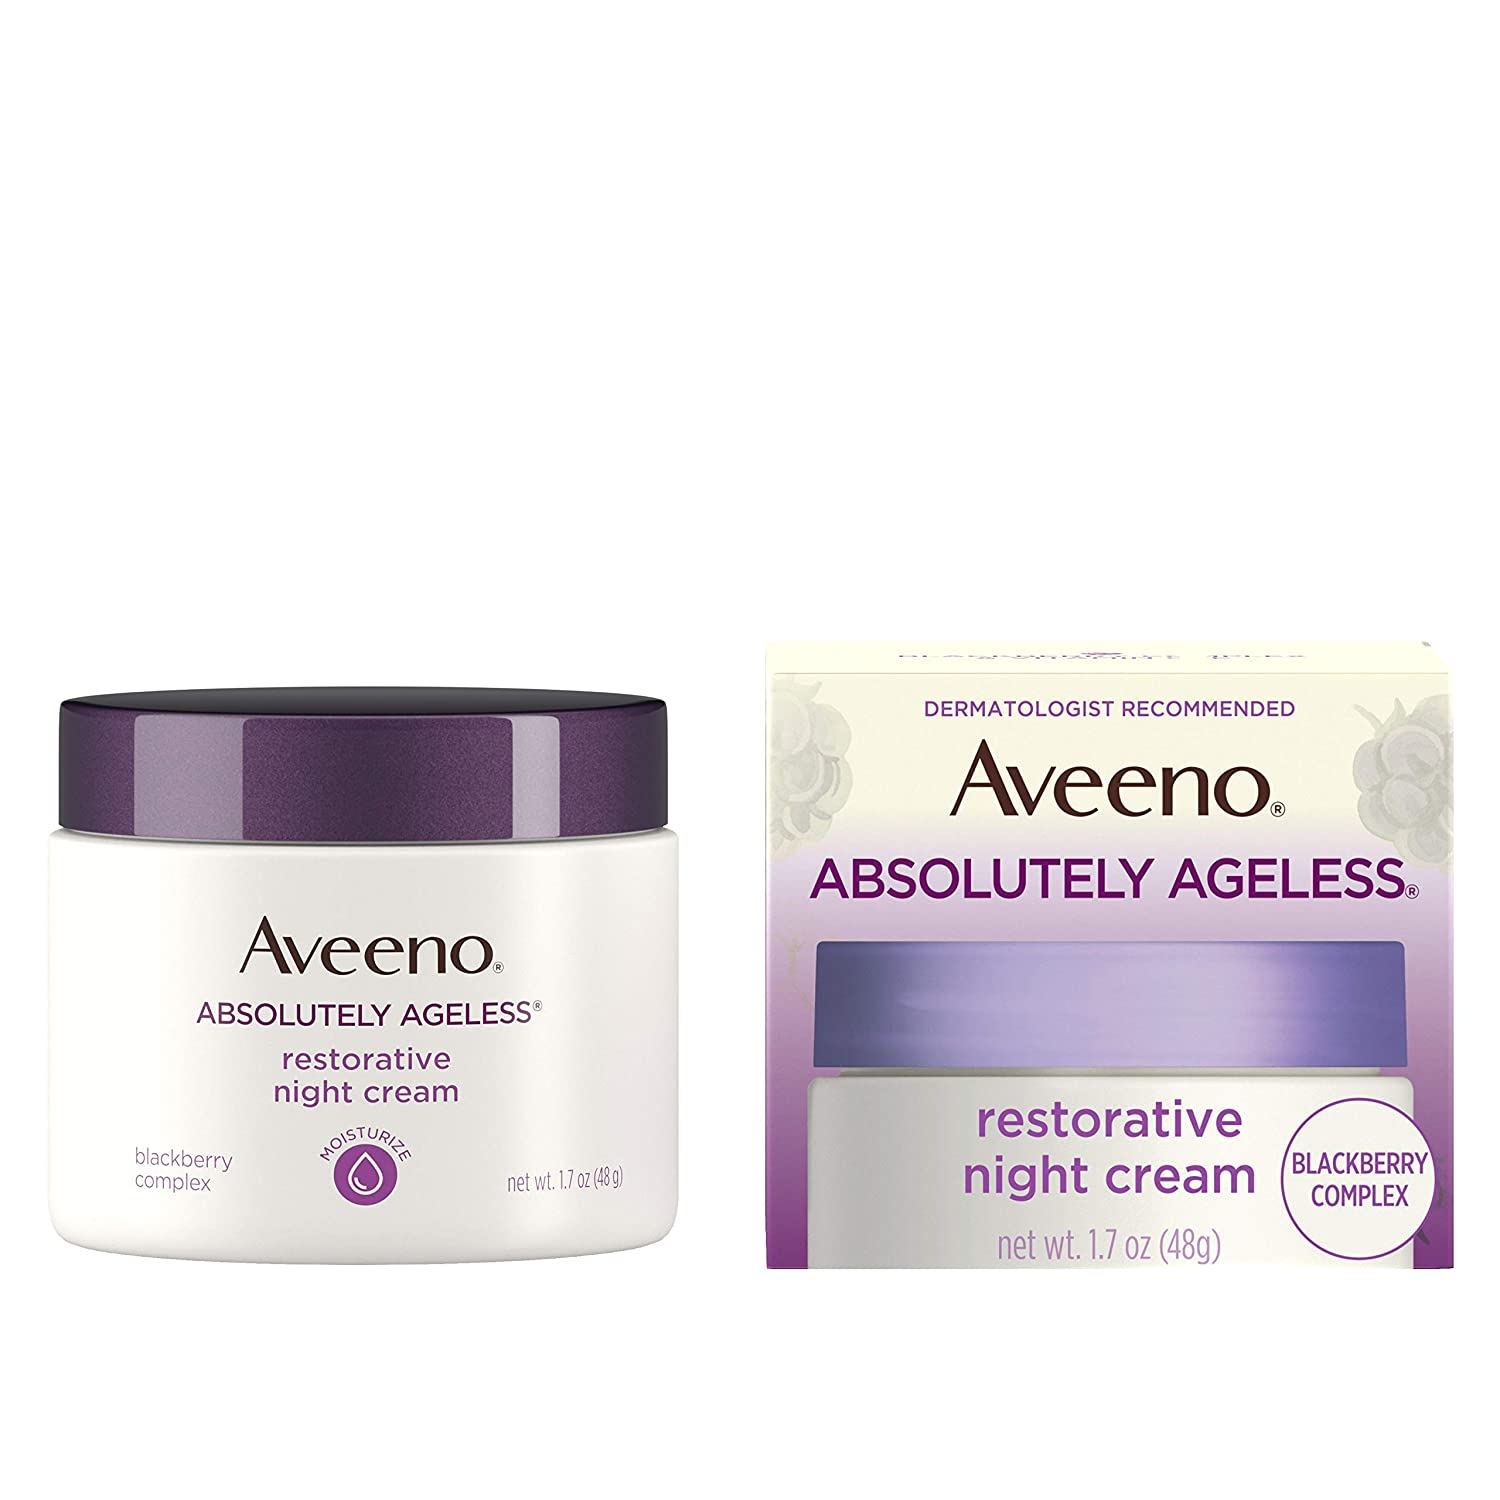 Aveeno Absolutely Ageless Restorative Night Cream Facial Moisturizer